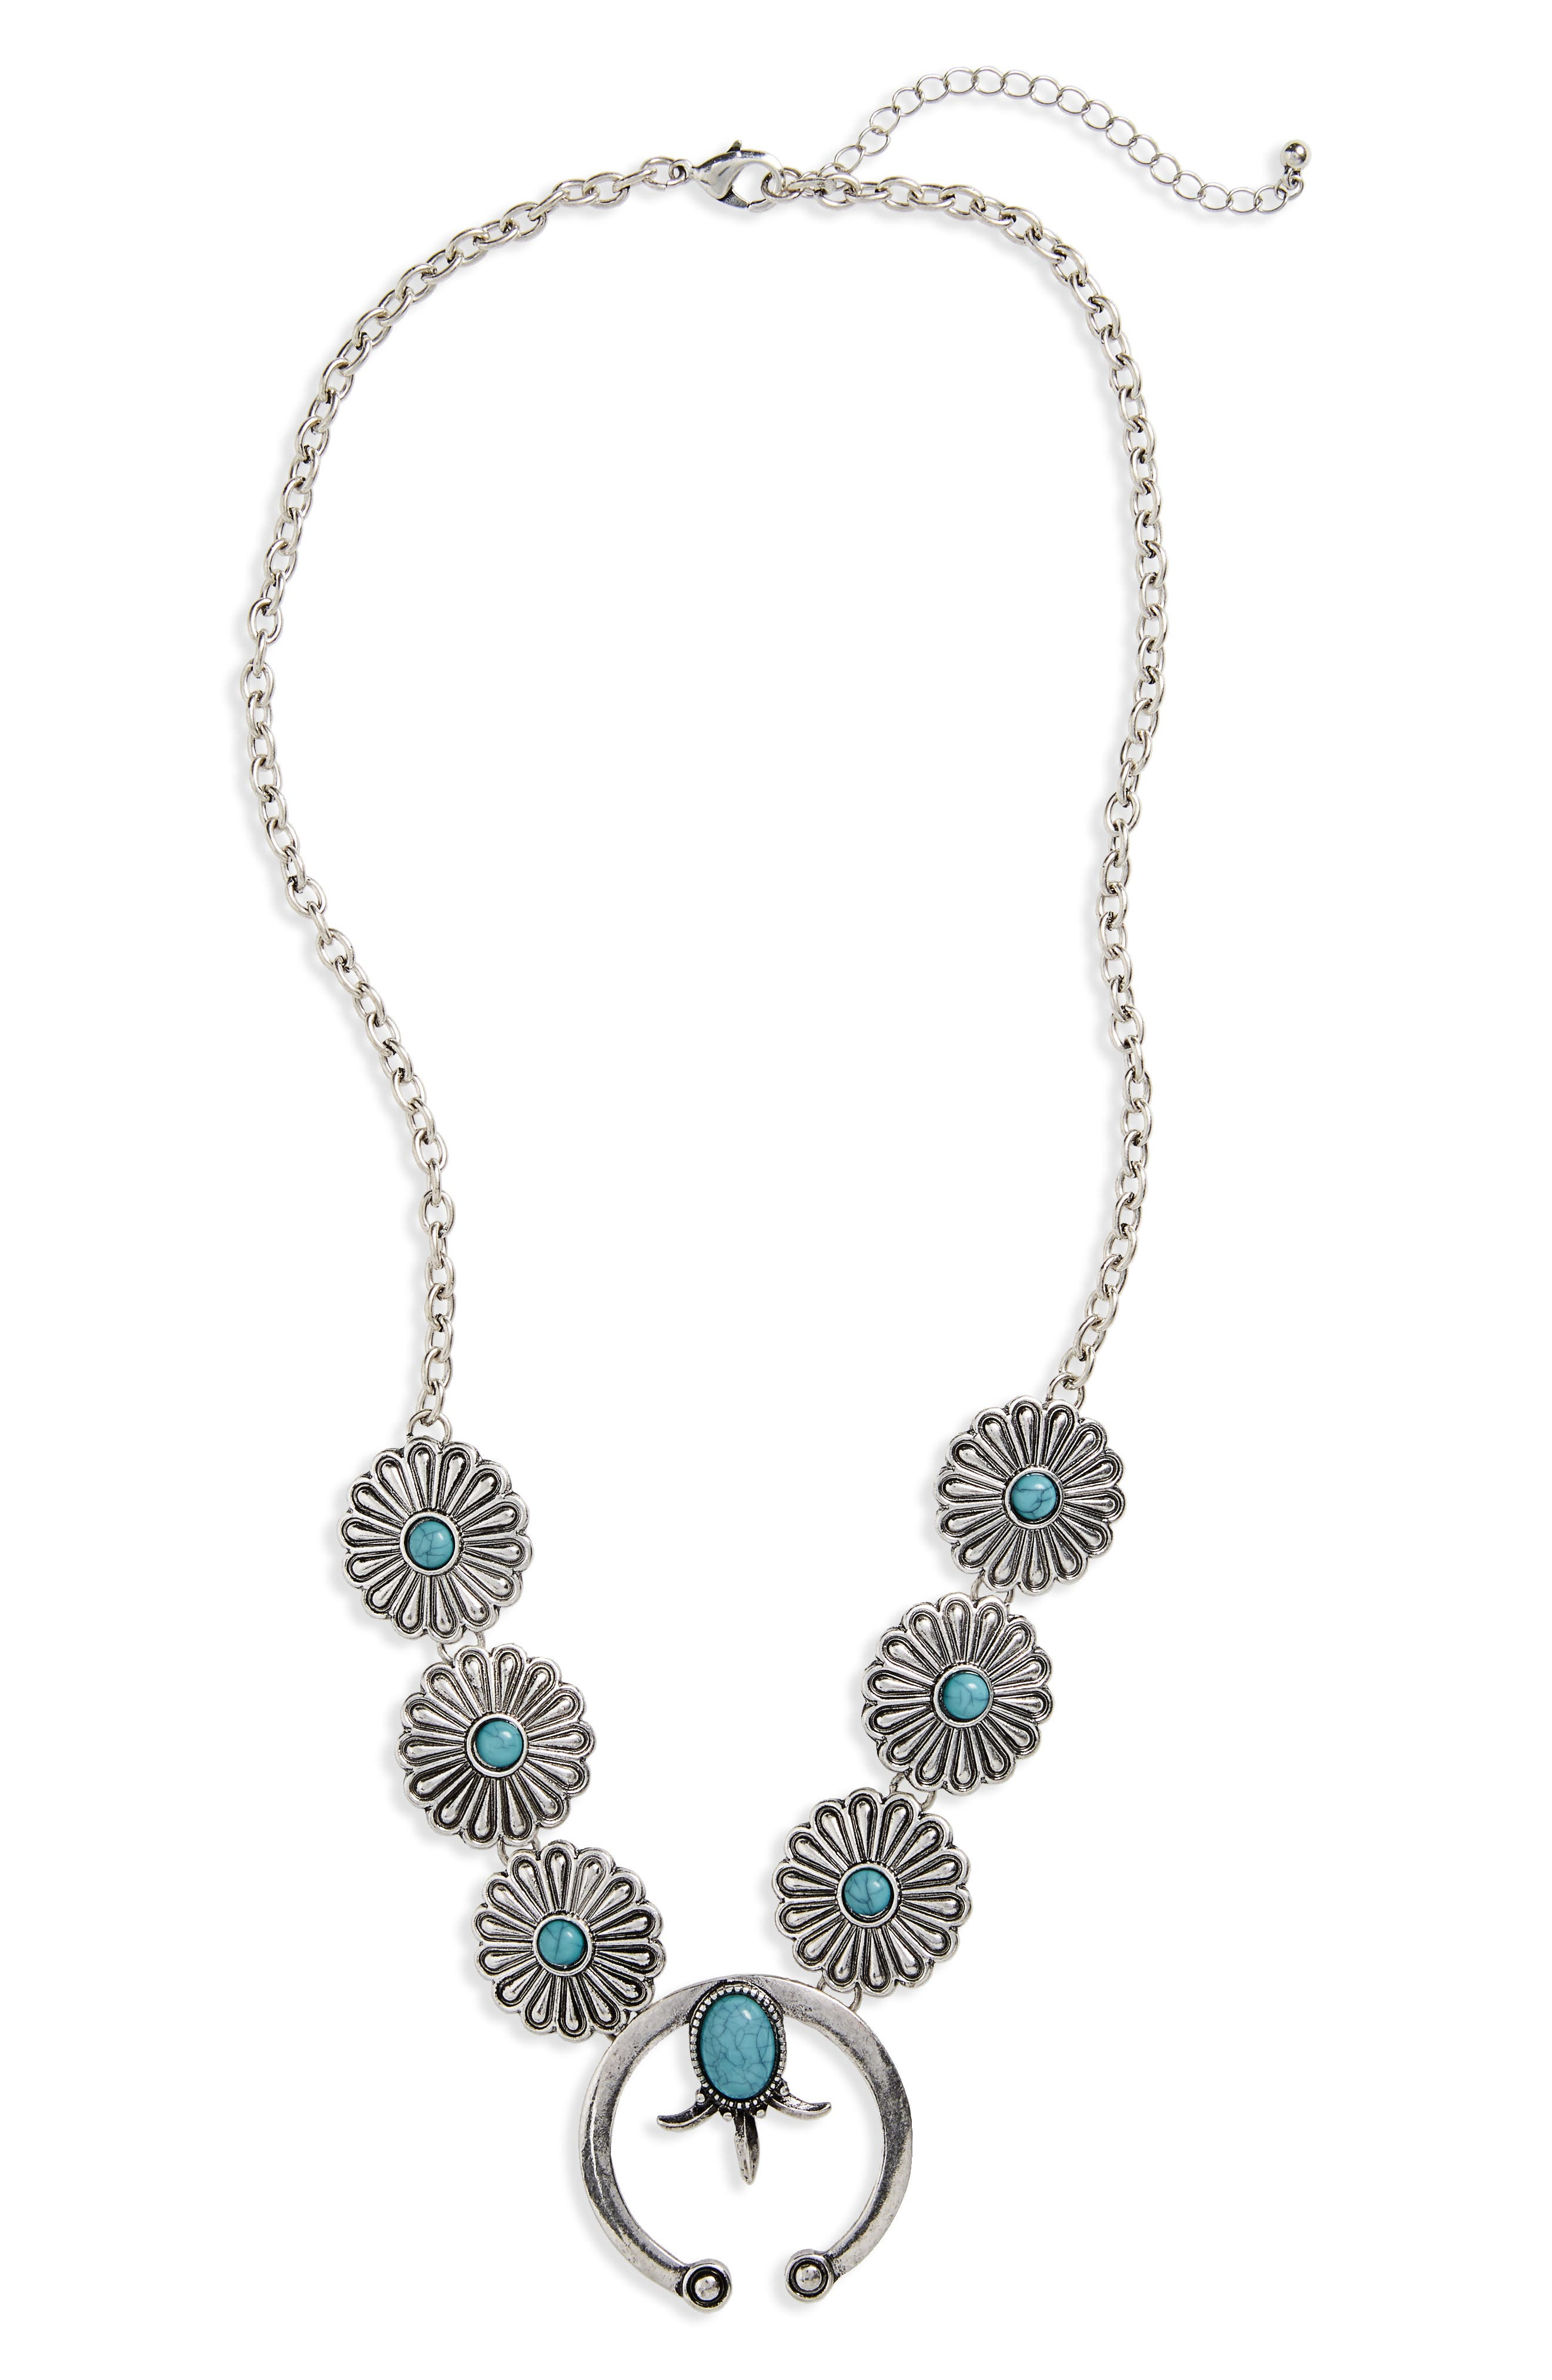 Western Floral Chain Necklace,                             Main thumbnail 1, color,                             040